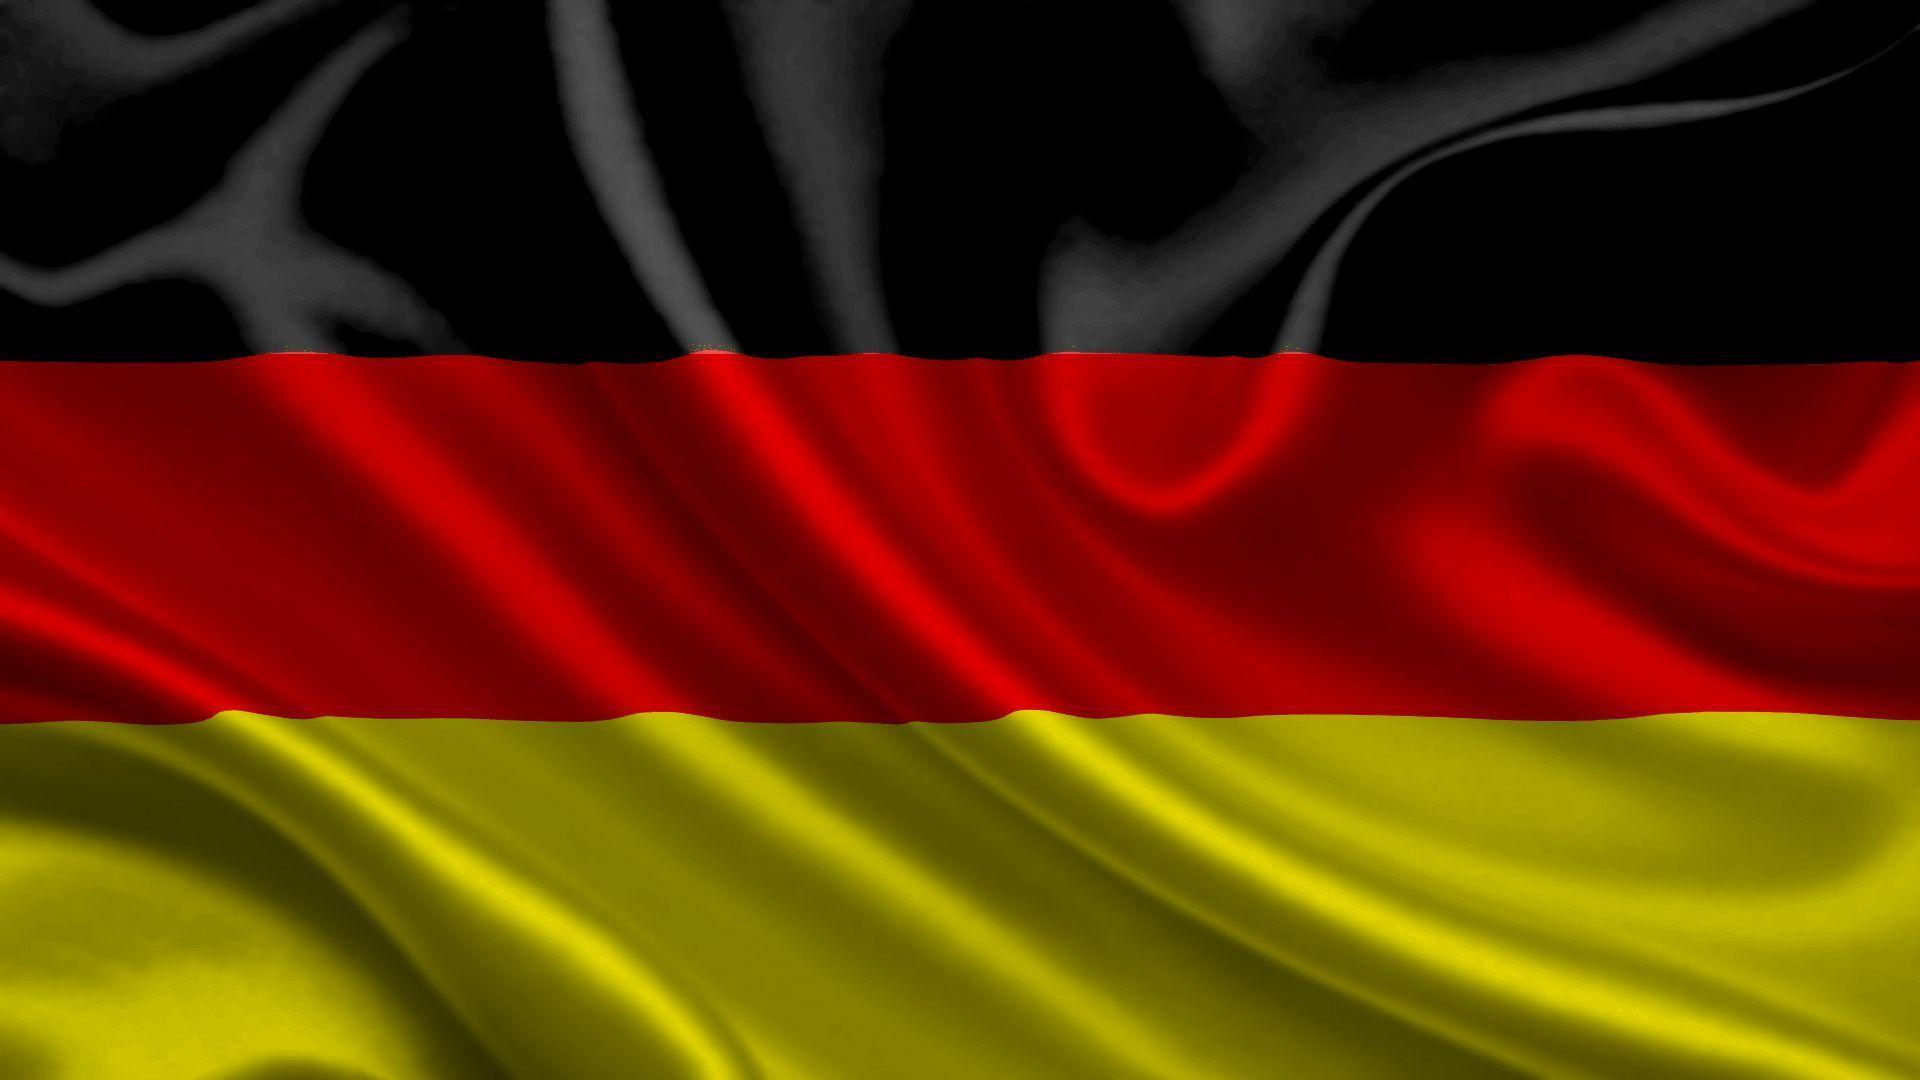 deutschland flag wallpaper - photo #21